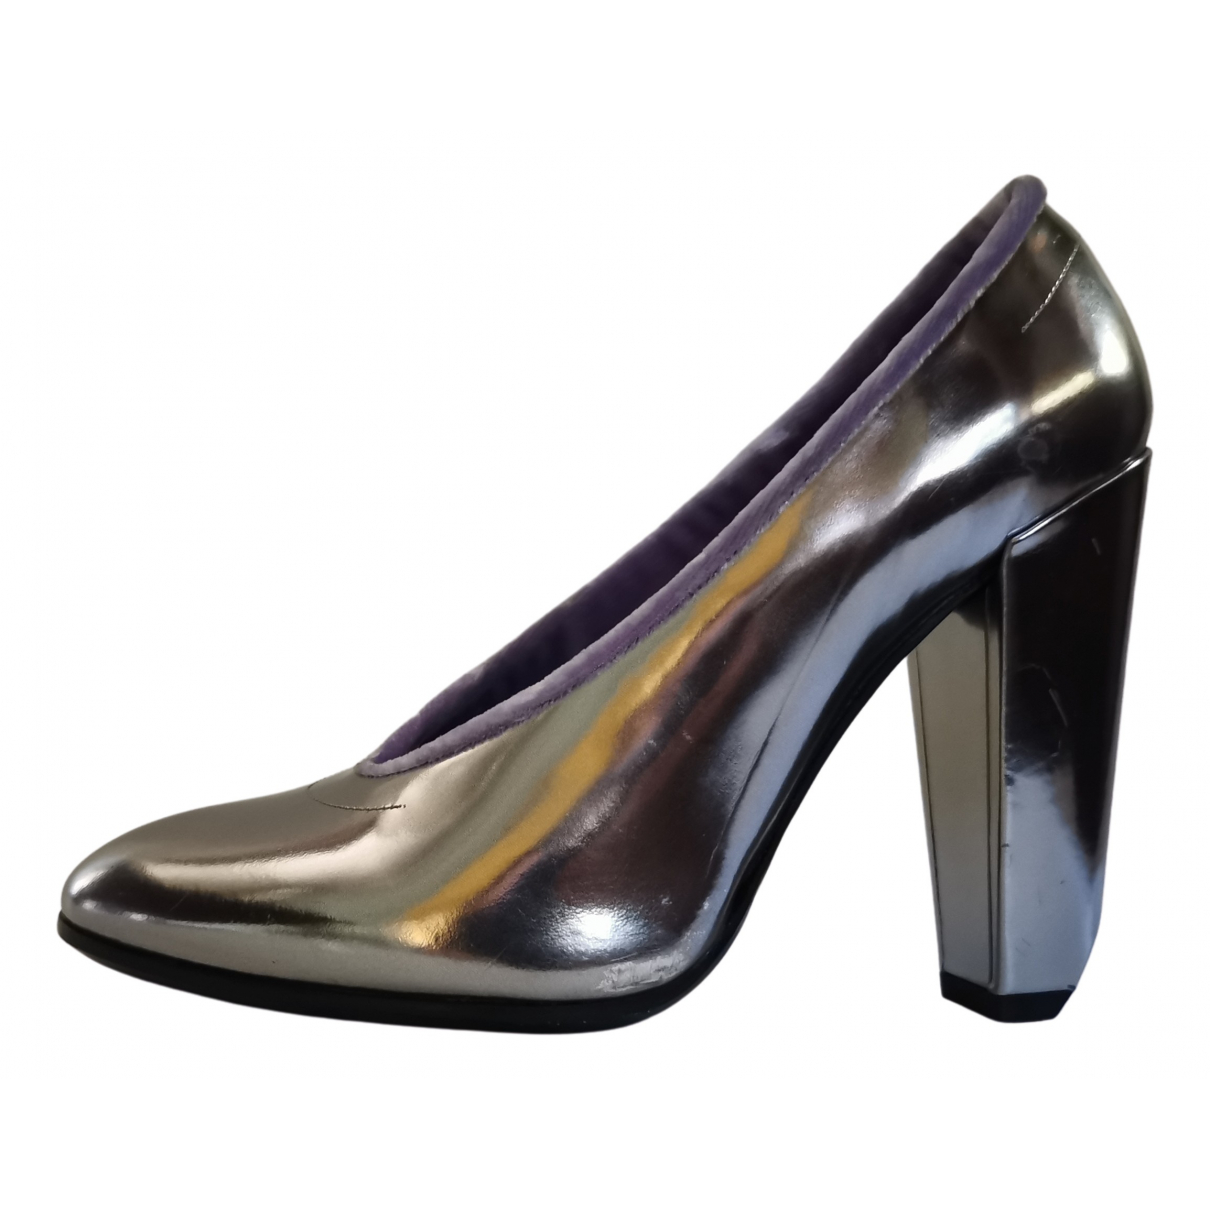 Marc Jacobs \N Silver Leather Heels for Women 36 EU